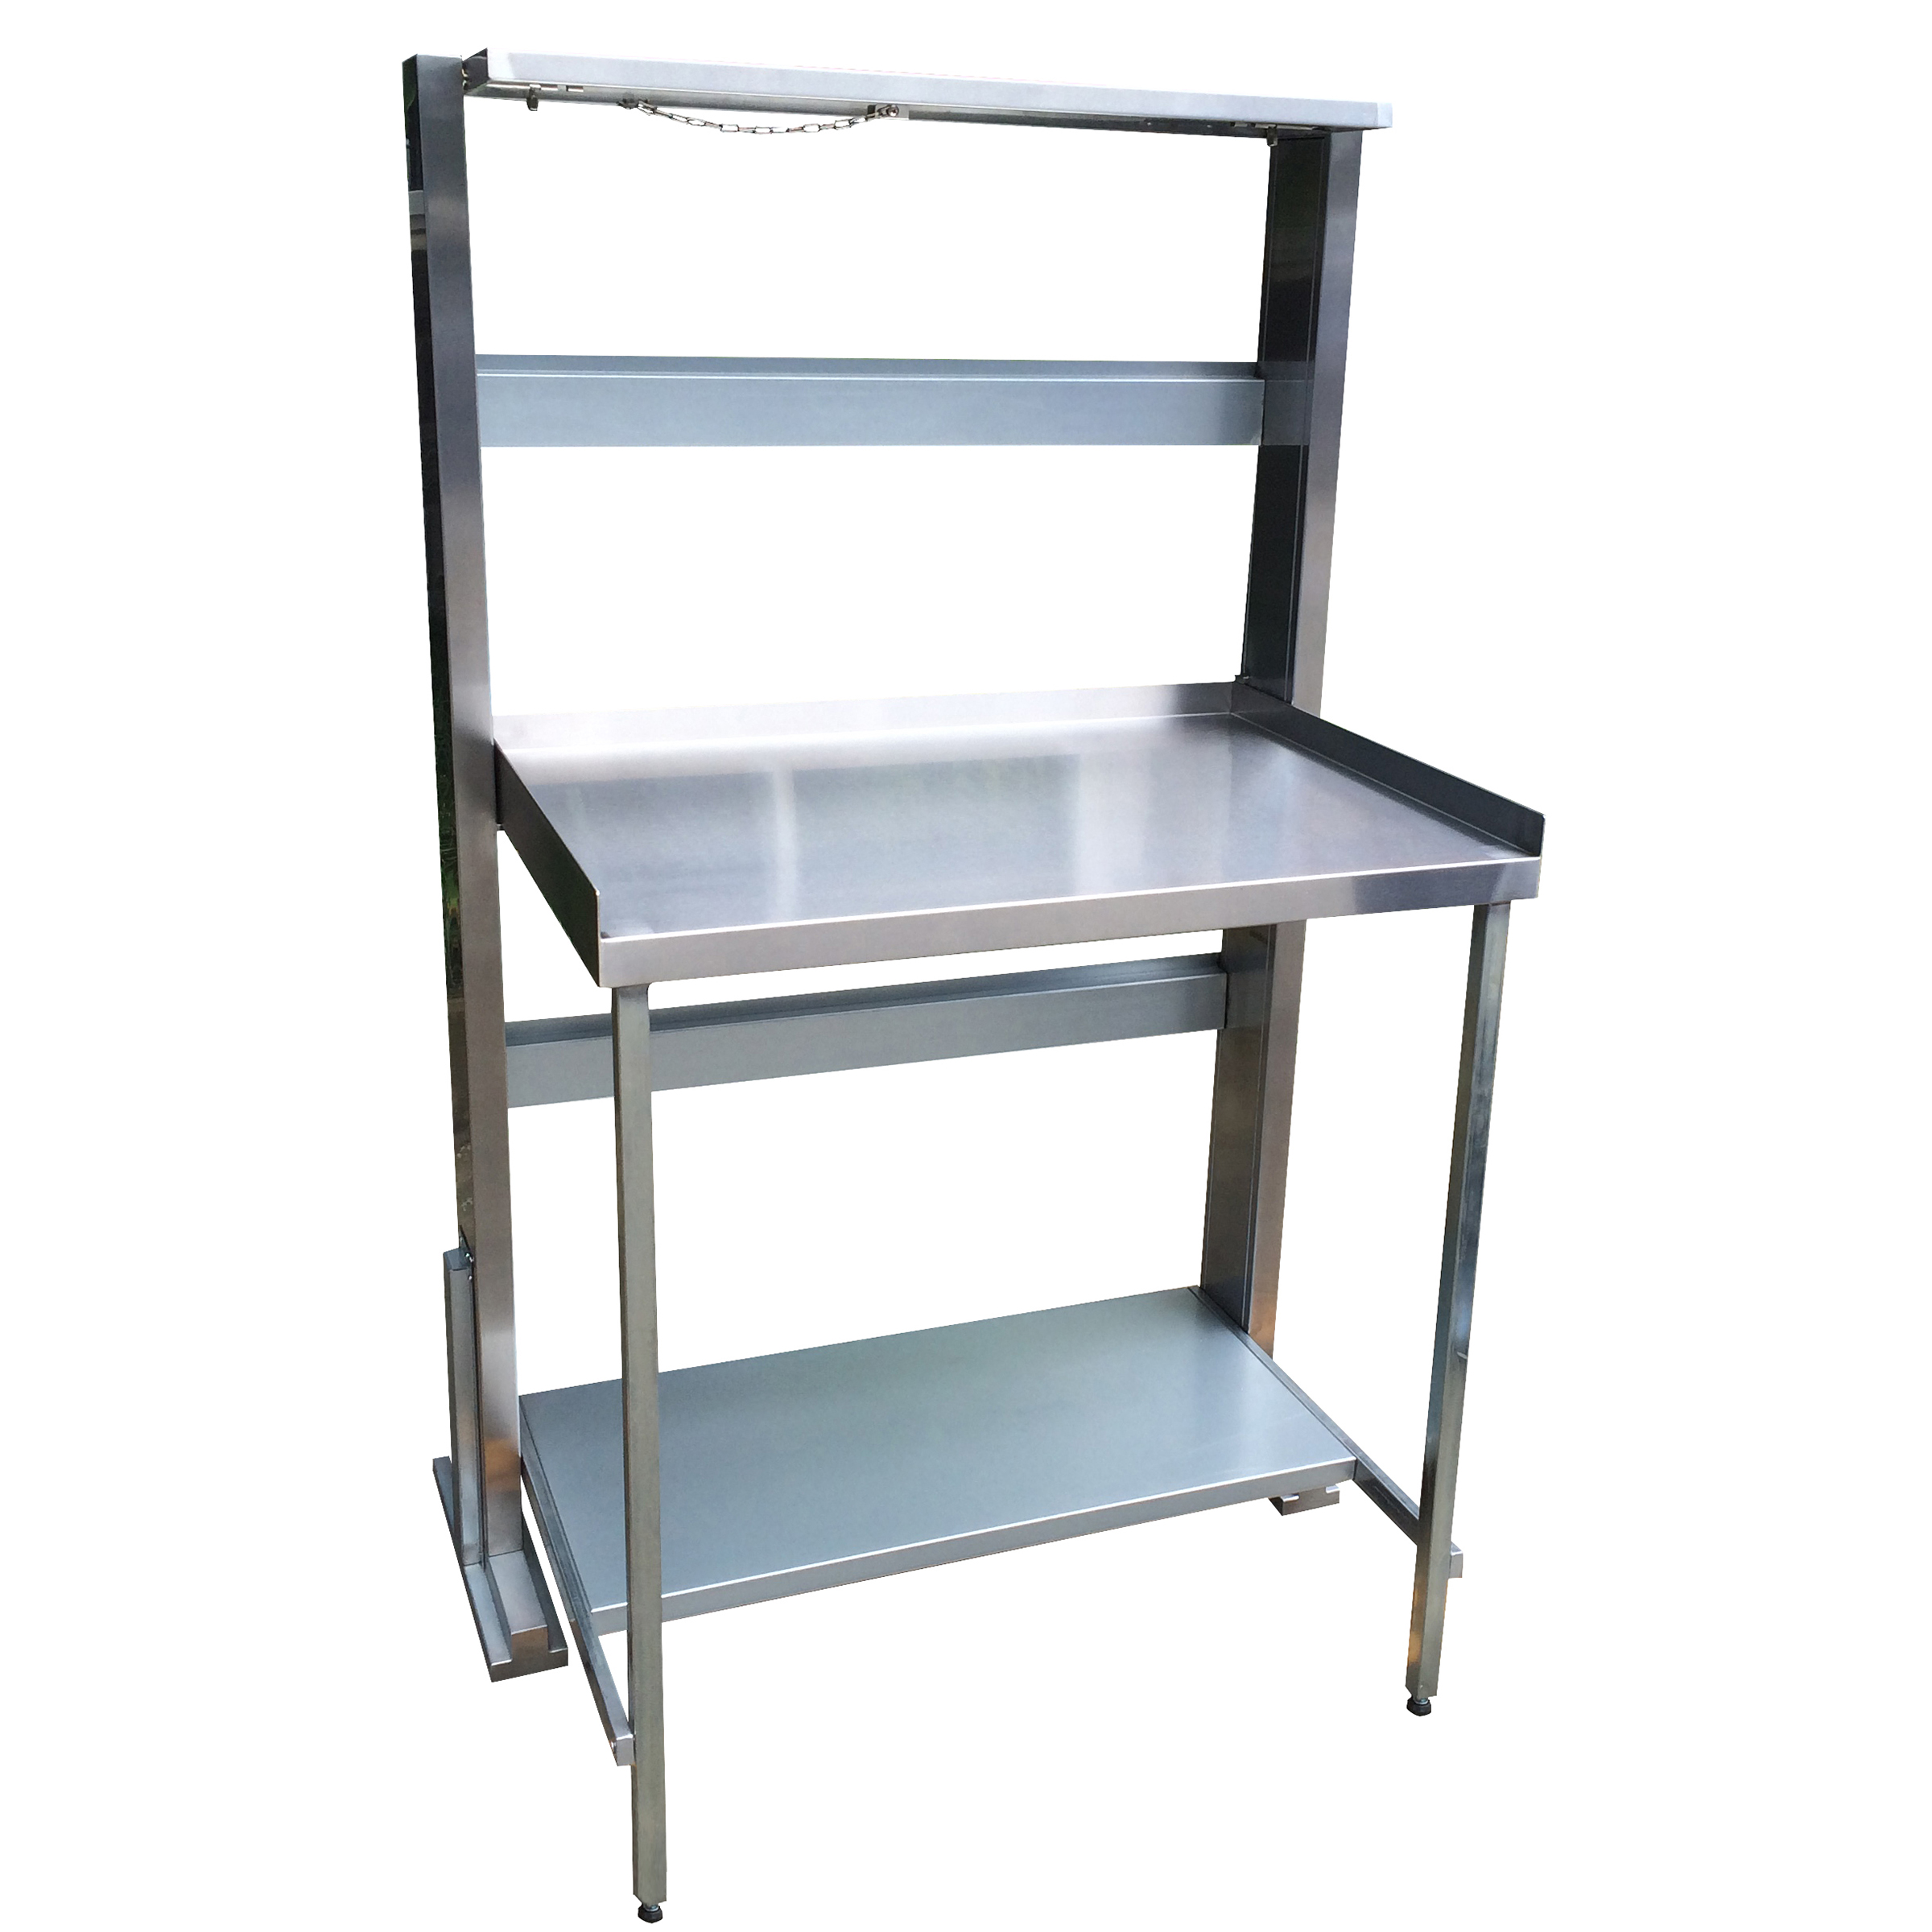 Space Saving Stainless Steel Work Bench Station